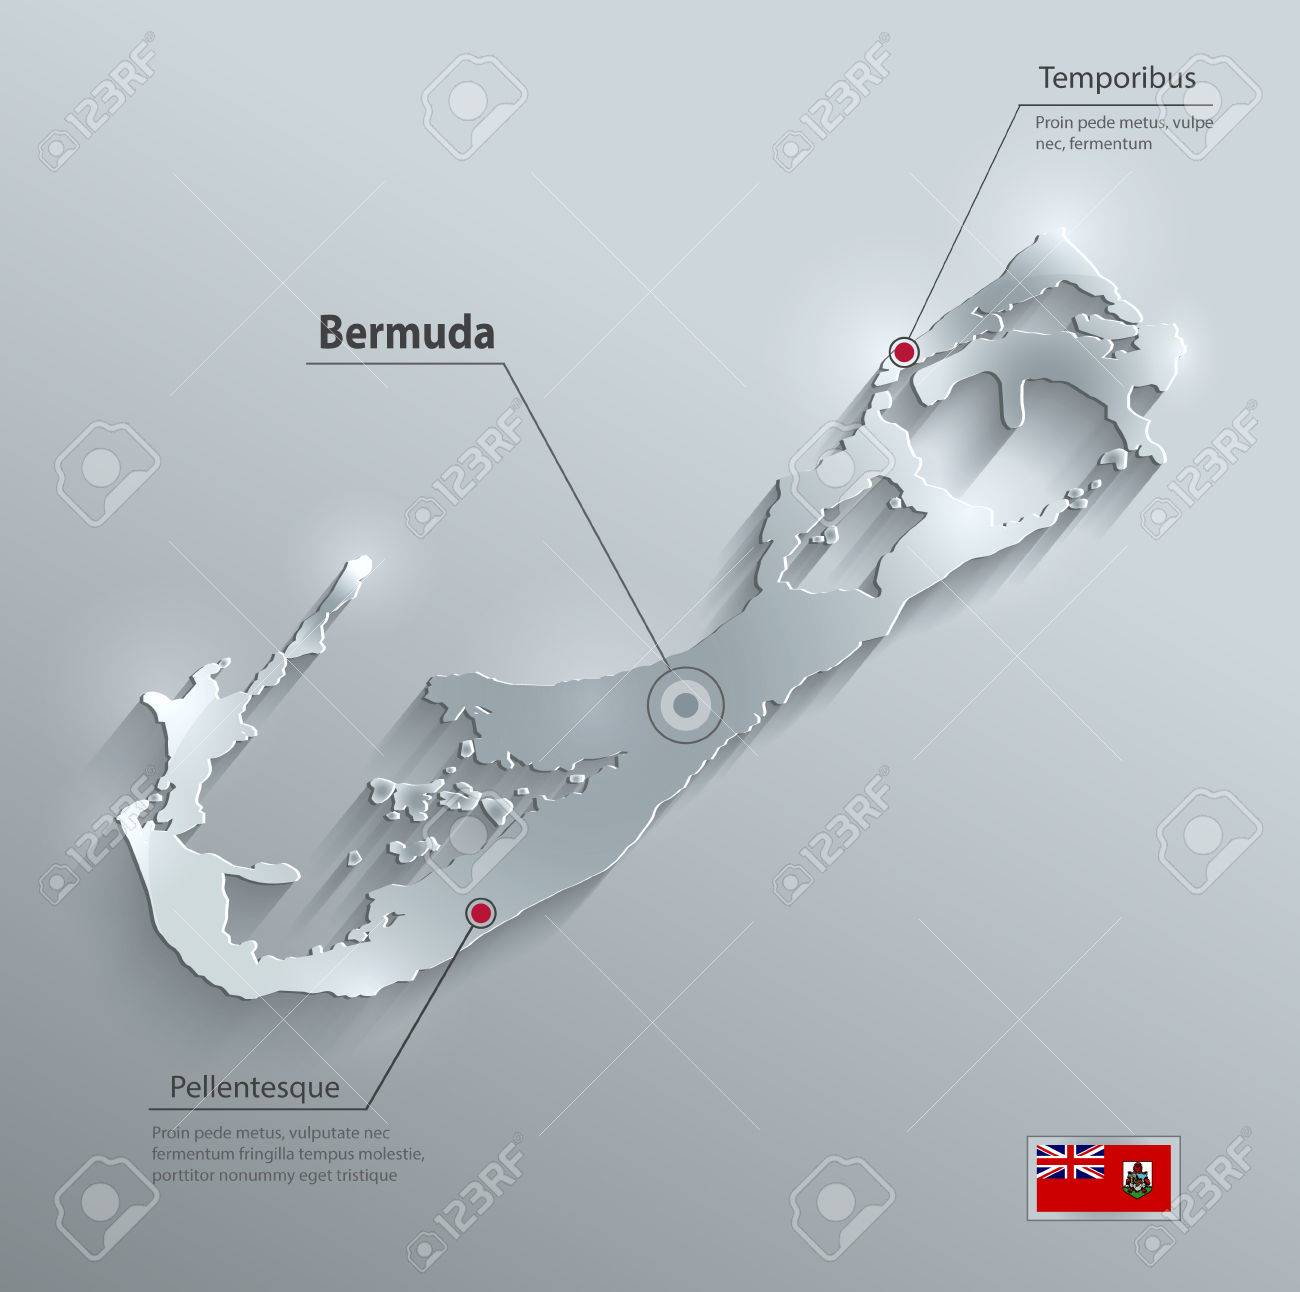 Bermuda Island Map Flag Glass Card Paper D Vector Royalty Free - Bermuda islands map